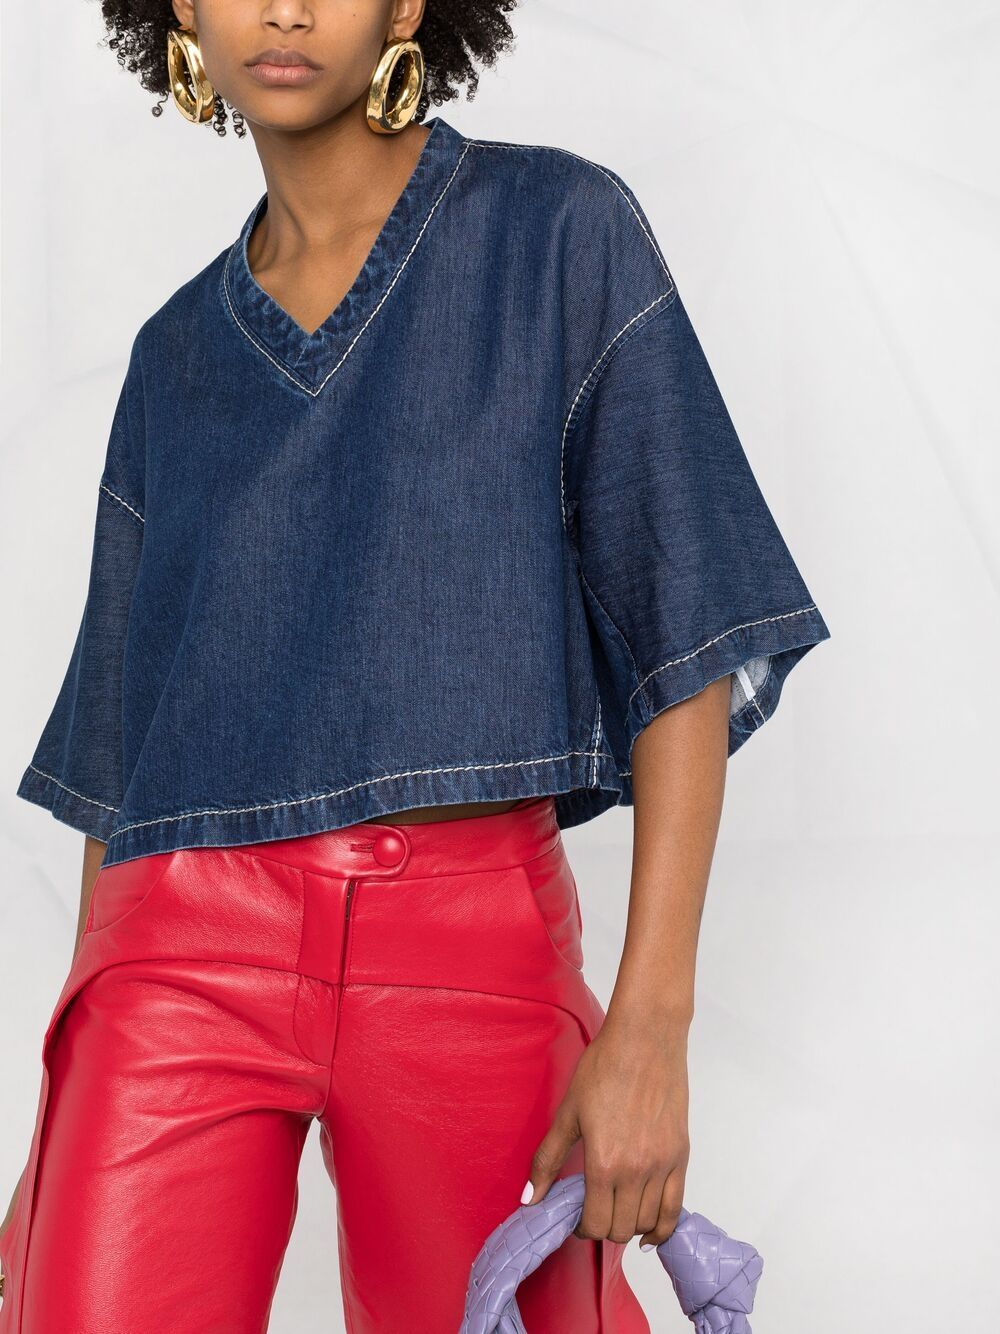 Medium blue lyocell V-neck cropped denim top  BOTTEGA VENETA |  | 657734-V0SH04600